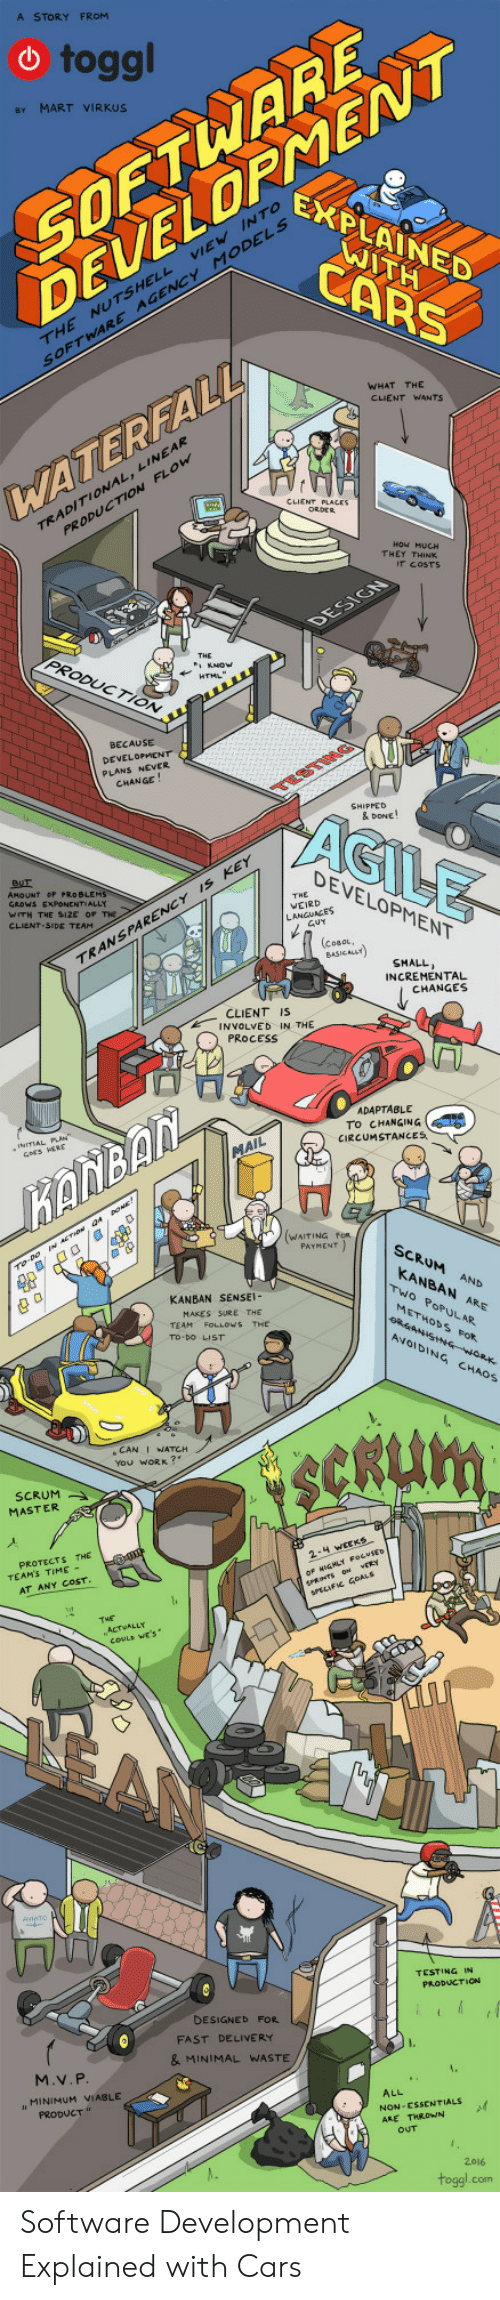 """essentials: A STORY FROM  SOETWARE  ELOPNENNT  toggl  e MART VIRKUS  EXPLAINED  INTo  MODELS  ATH  CARS  THE NUTSHELL  SOFTWARE  AGENCY  WHAT THE  CLIENT WANTS  INEAR  WATEREAL  TRADITIONAL, L  PRODUCTIon  THEY THINK  IT COSTS  PRODUCTION  BECAUSE  DEVELOPMENT  PLANS NEVER  CHANGE  AGILE  & DONE!  DEVELOPMENT  AMOUNT OF PRO BLEM  GROWS EXPONENTIALLY  WITH THE SIZE OF  CLIENT-SIDE TEAM  s KEY  THE  WEIRD  PARENCY  RAN S  SMALL  INCREMENTAL  CHANGES  CLIENT IS  INVOLVED IN THE  PROCESS  ADAPTABLE  To CHANGING  CIRCUMSTANCES  ANBAN  WAITING FoR  SCRUM AND  KANBAN ARE  KANBAN SENSEI  Two PoPULAR.  MAKES SURE THE  TEAM FOLLOWS THE  To-DO LIST  METHODs FoR  AVOIDING CHAOS  e CAN I WATCH  You WORK?  SCRUM  MASTER  PROTECTS THE  TEAMS TIME -  AT ANY COST  ㄇ  TESTING IN  PRODUCTION  DESIGNEb FOR  FAST DELIVERY  & MINIMAL WASTE  M.V. P  MINIMUM VIABLE  PRODUCT""""  ALL  NON -ESSENTIALS  2016  toggl.com Software Development Explained with Cars"""